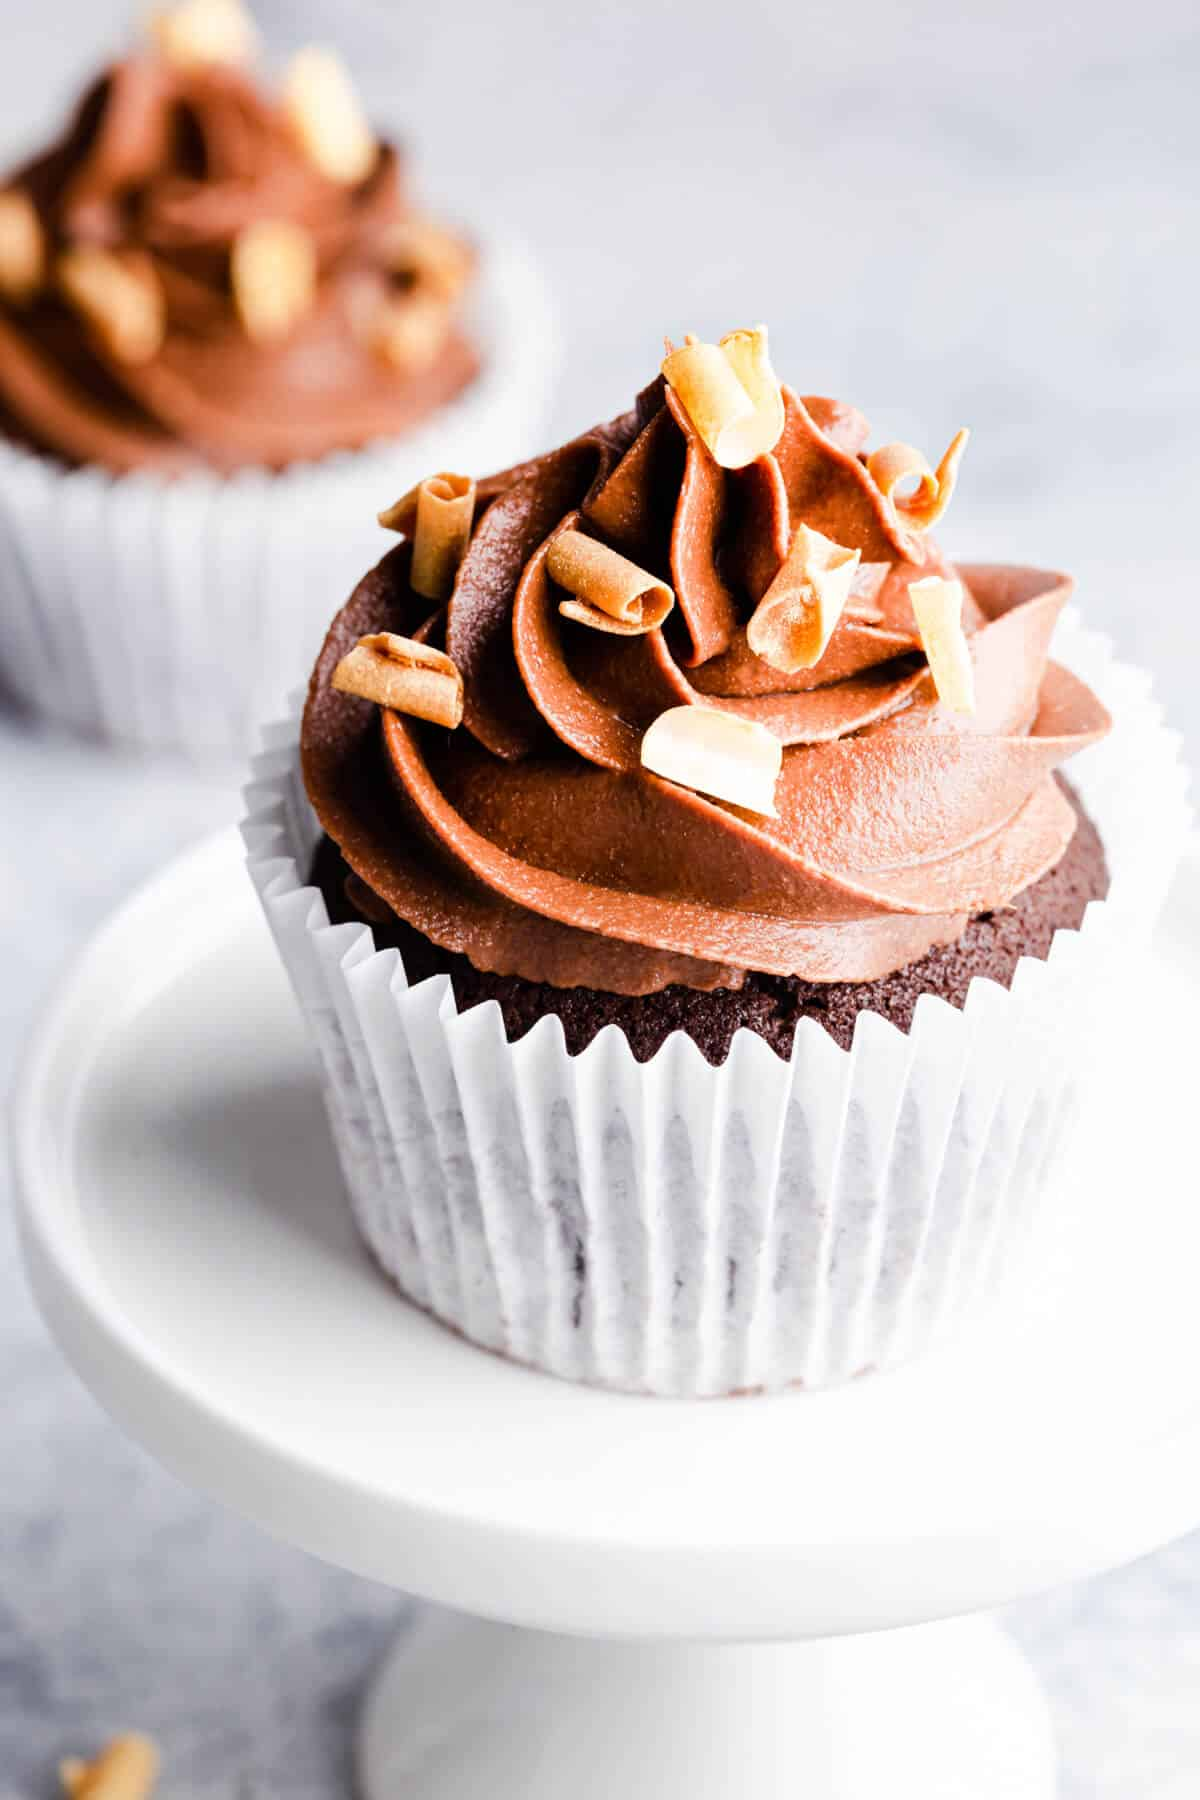 a side angle photo of a single chocolate cupcake on a small white cupcake stand